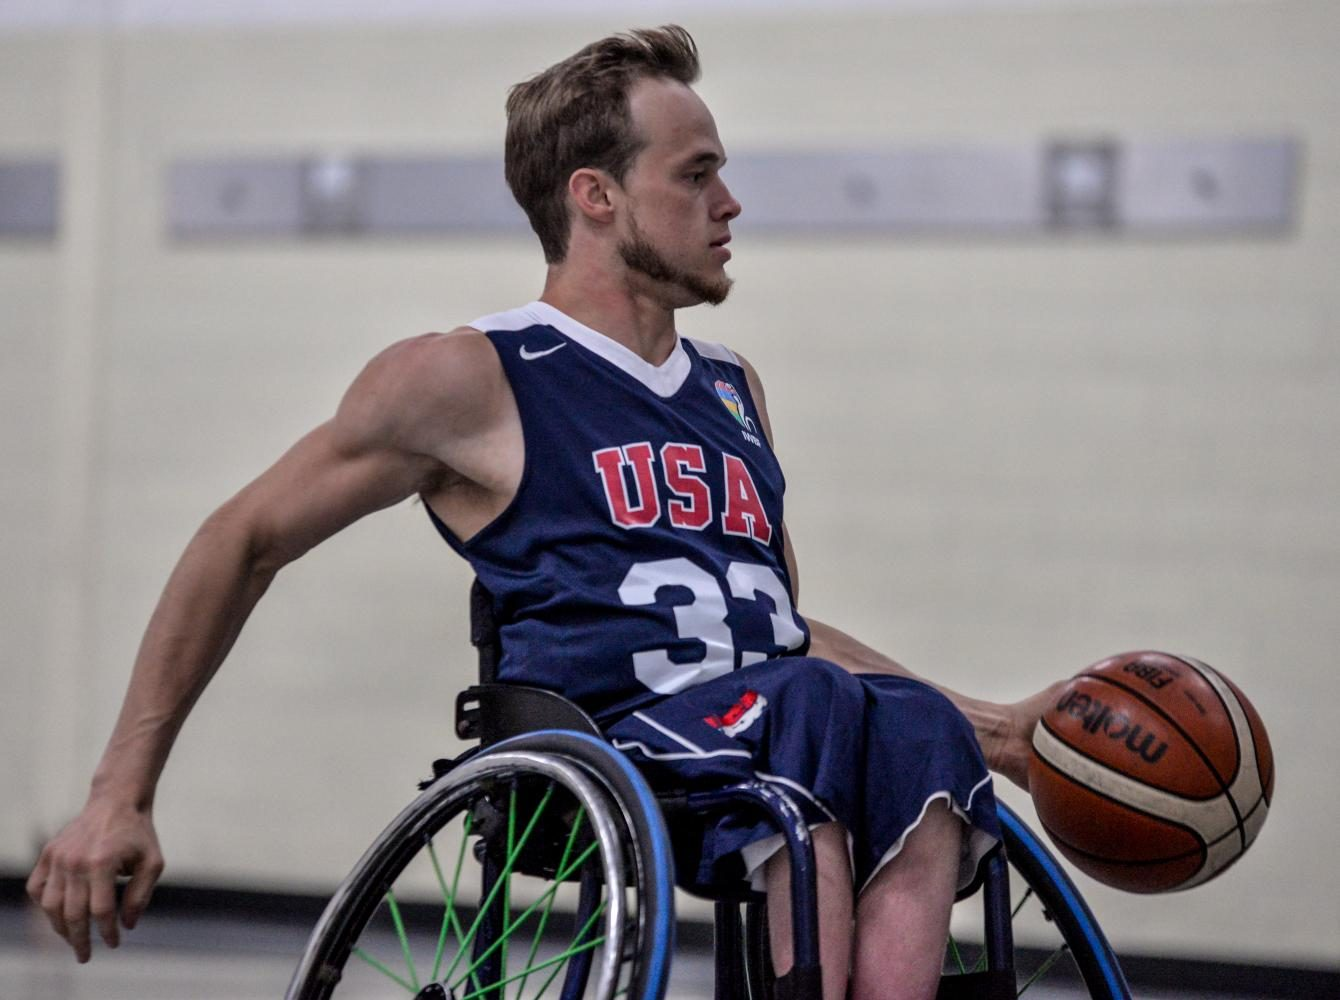 Former+Warhawk+men%E2%80%99s+wheelchair+basketball+player+and+current+UW-W+employee+John+Boie+made+the+most+of+his+summer+representing+the+United+States+in+the+2017+International+Wheelchair+Basketball+Federation+America%E2%80%99s+Qualifier.+